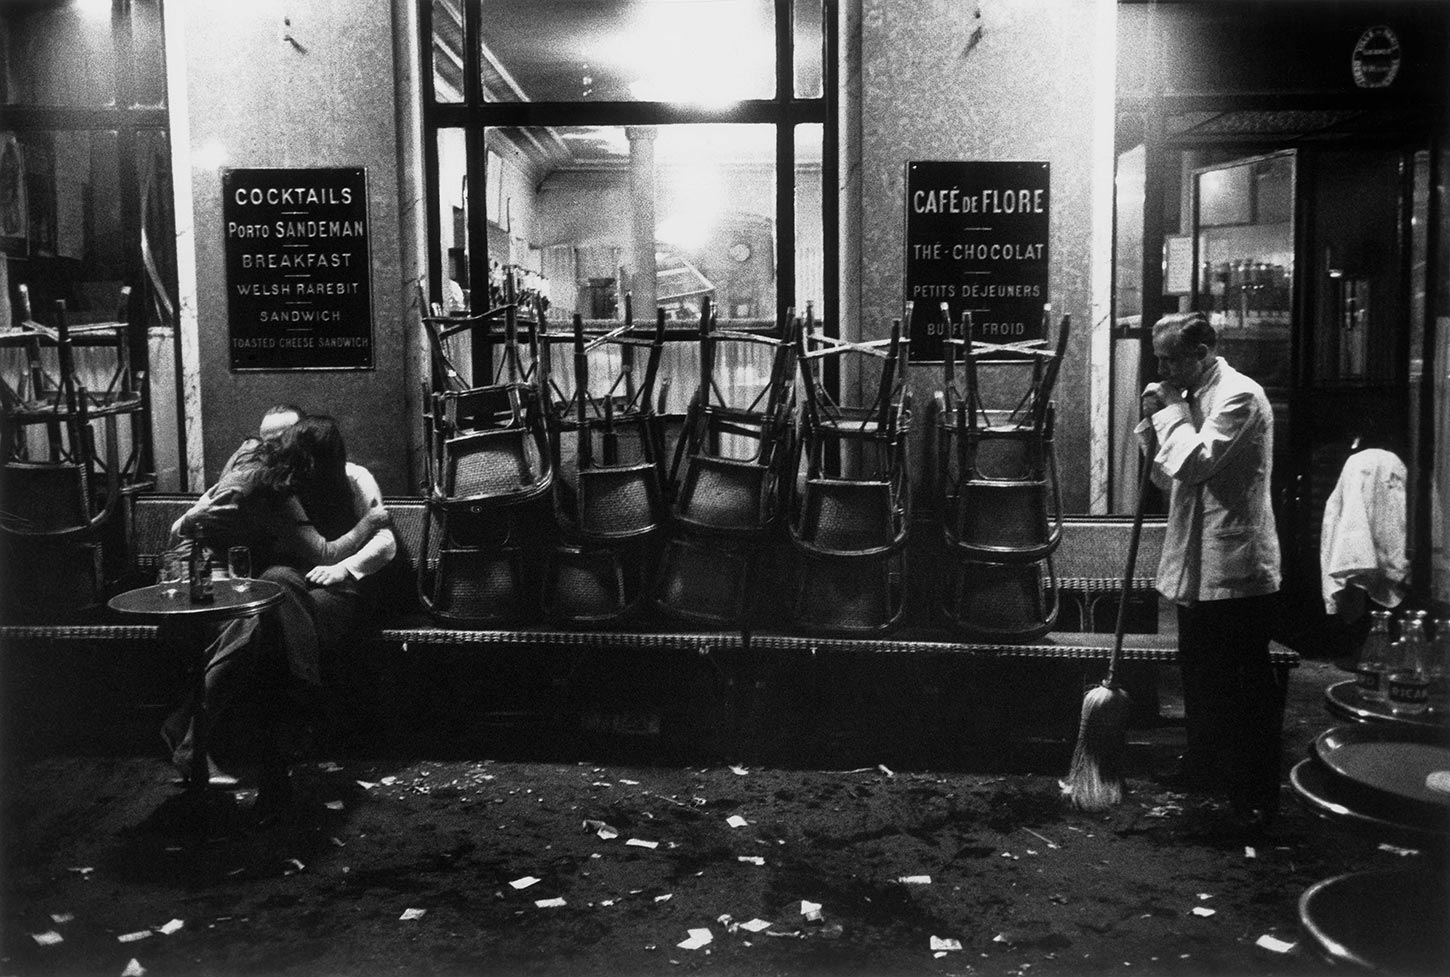 Cafe de Flore. Paris, France. 1958.